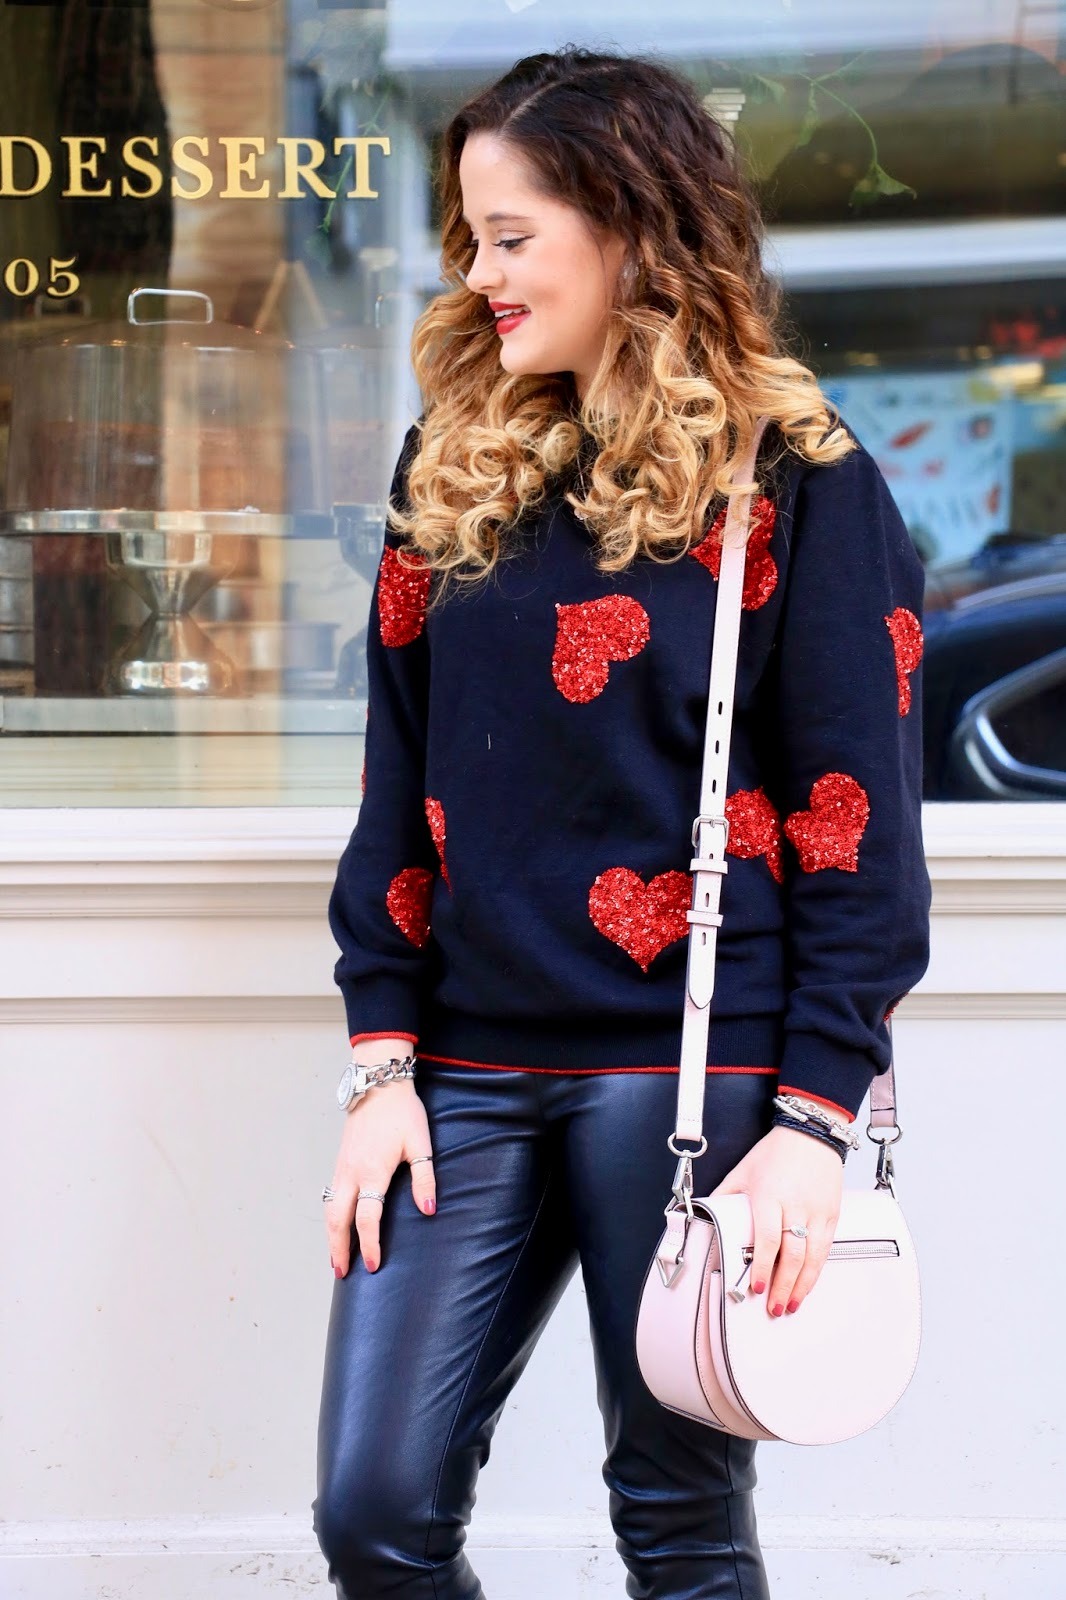 Nyc fashion blogger Kathleen Harper's casual Valentine's Day outfit